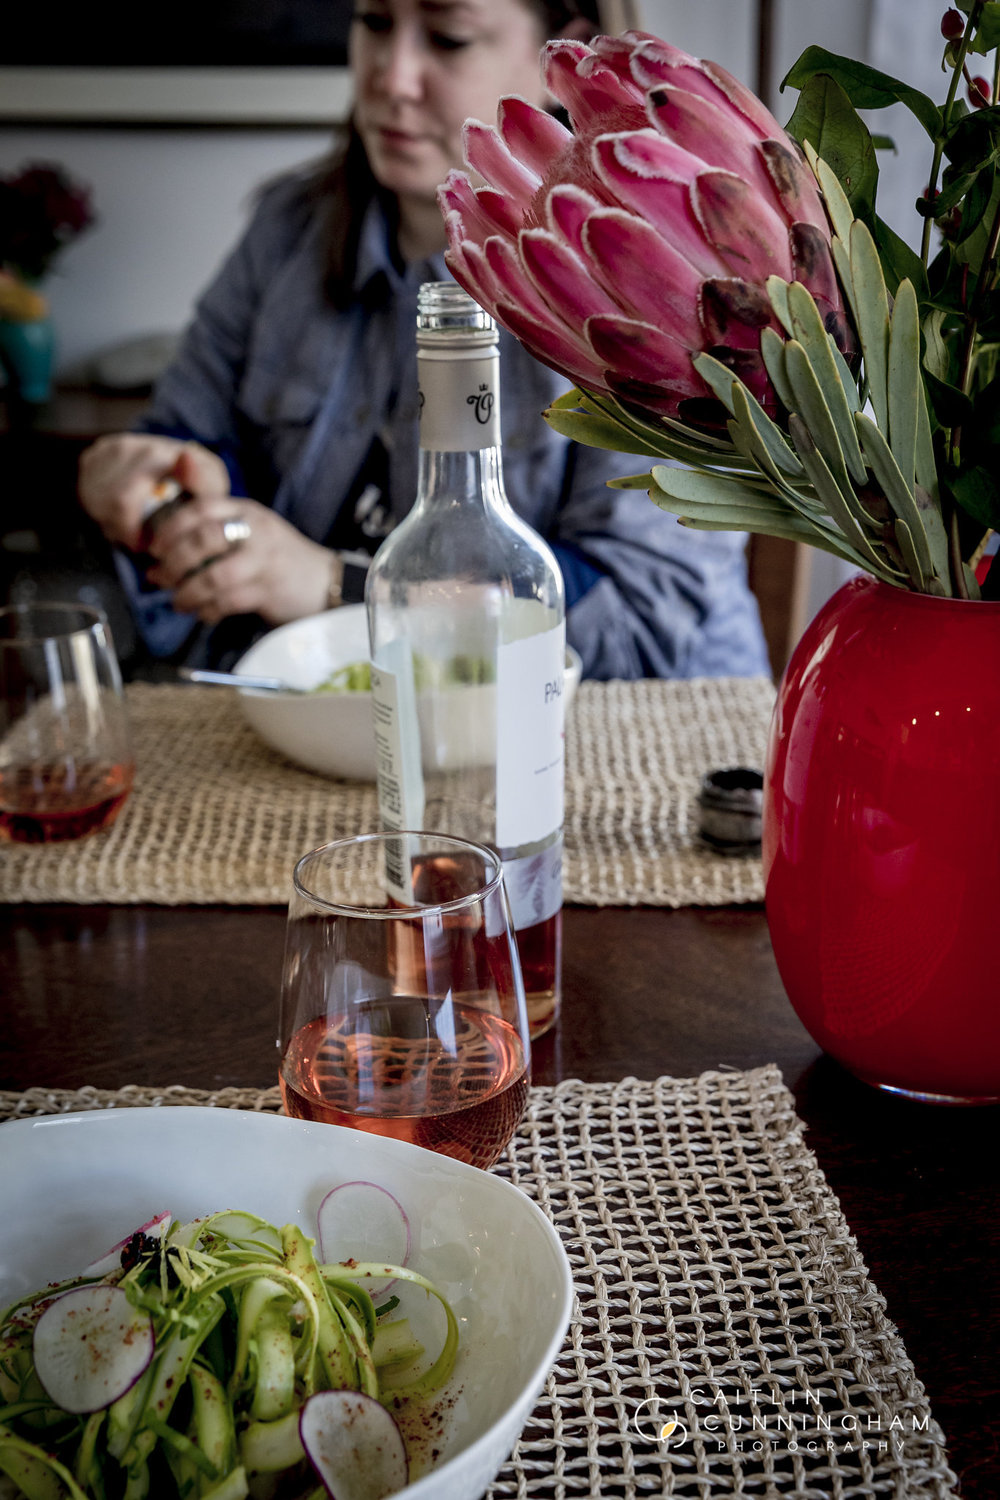 the salad pairs well with a bold rose